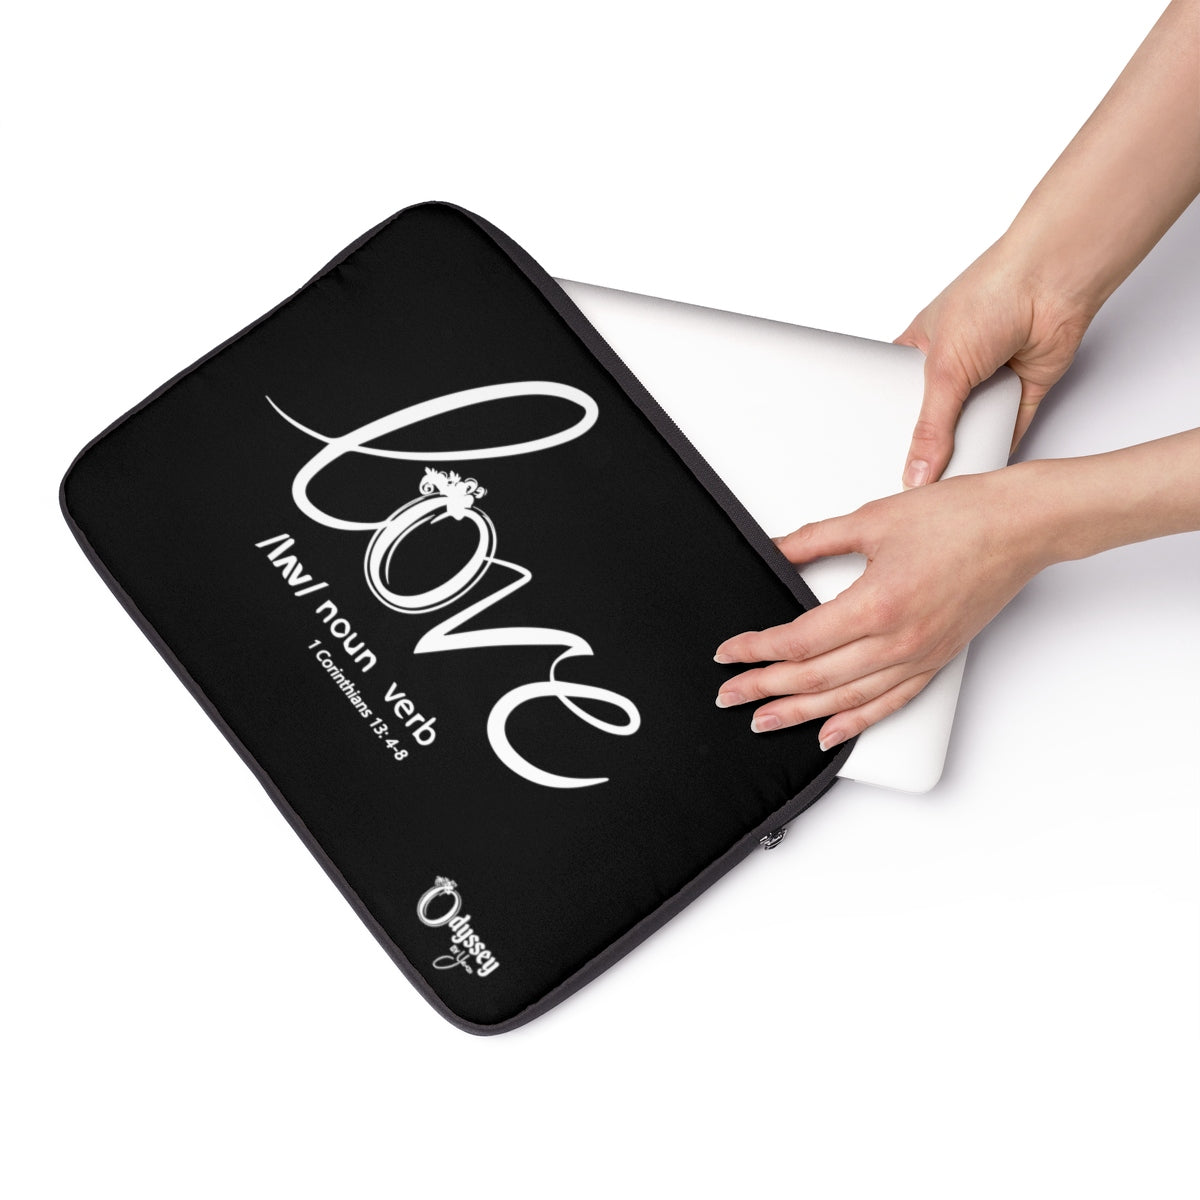 Odyssey Love Laptop Sleeve - Black